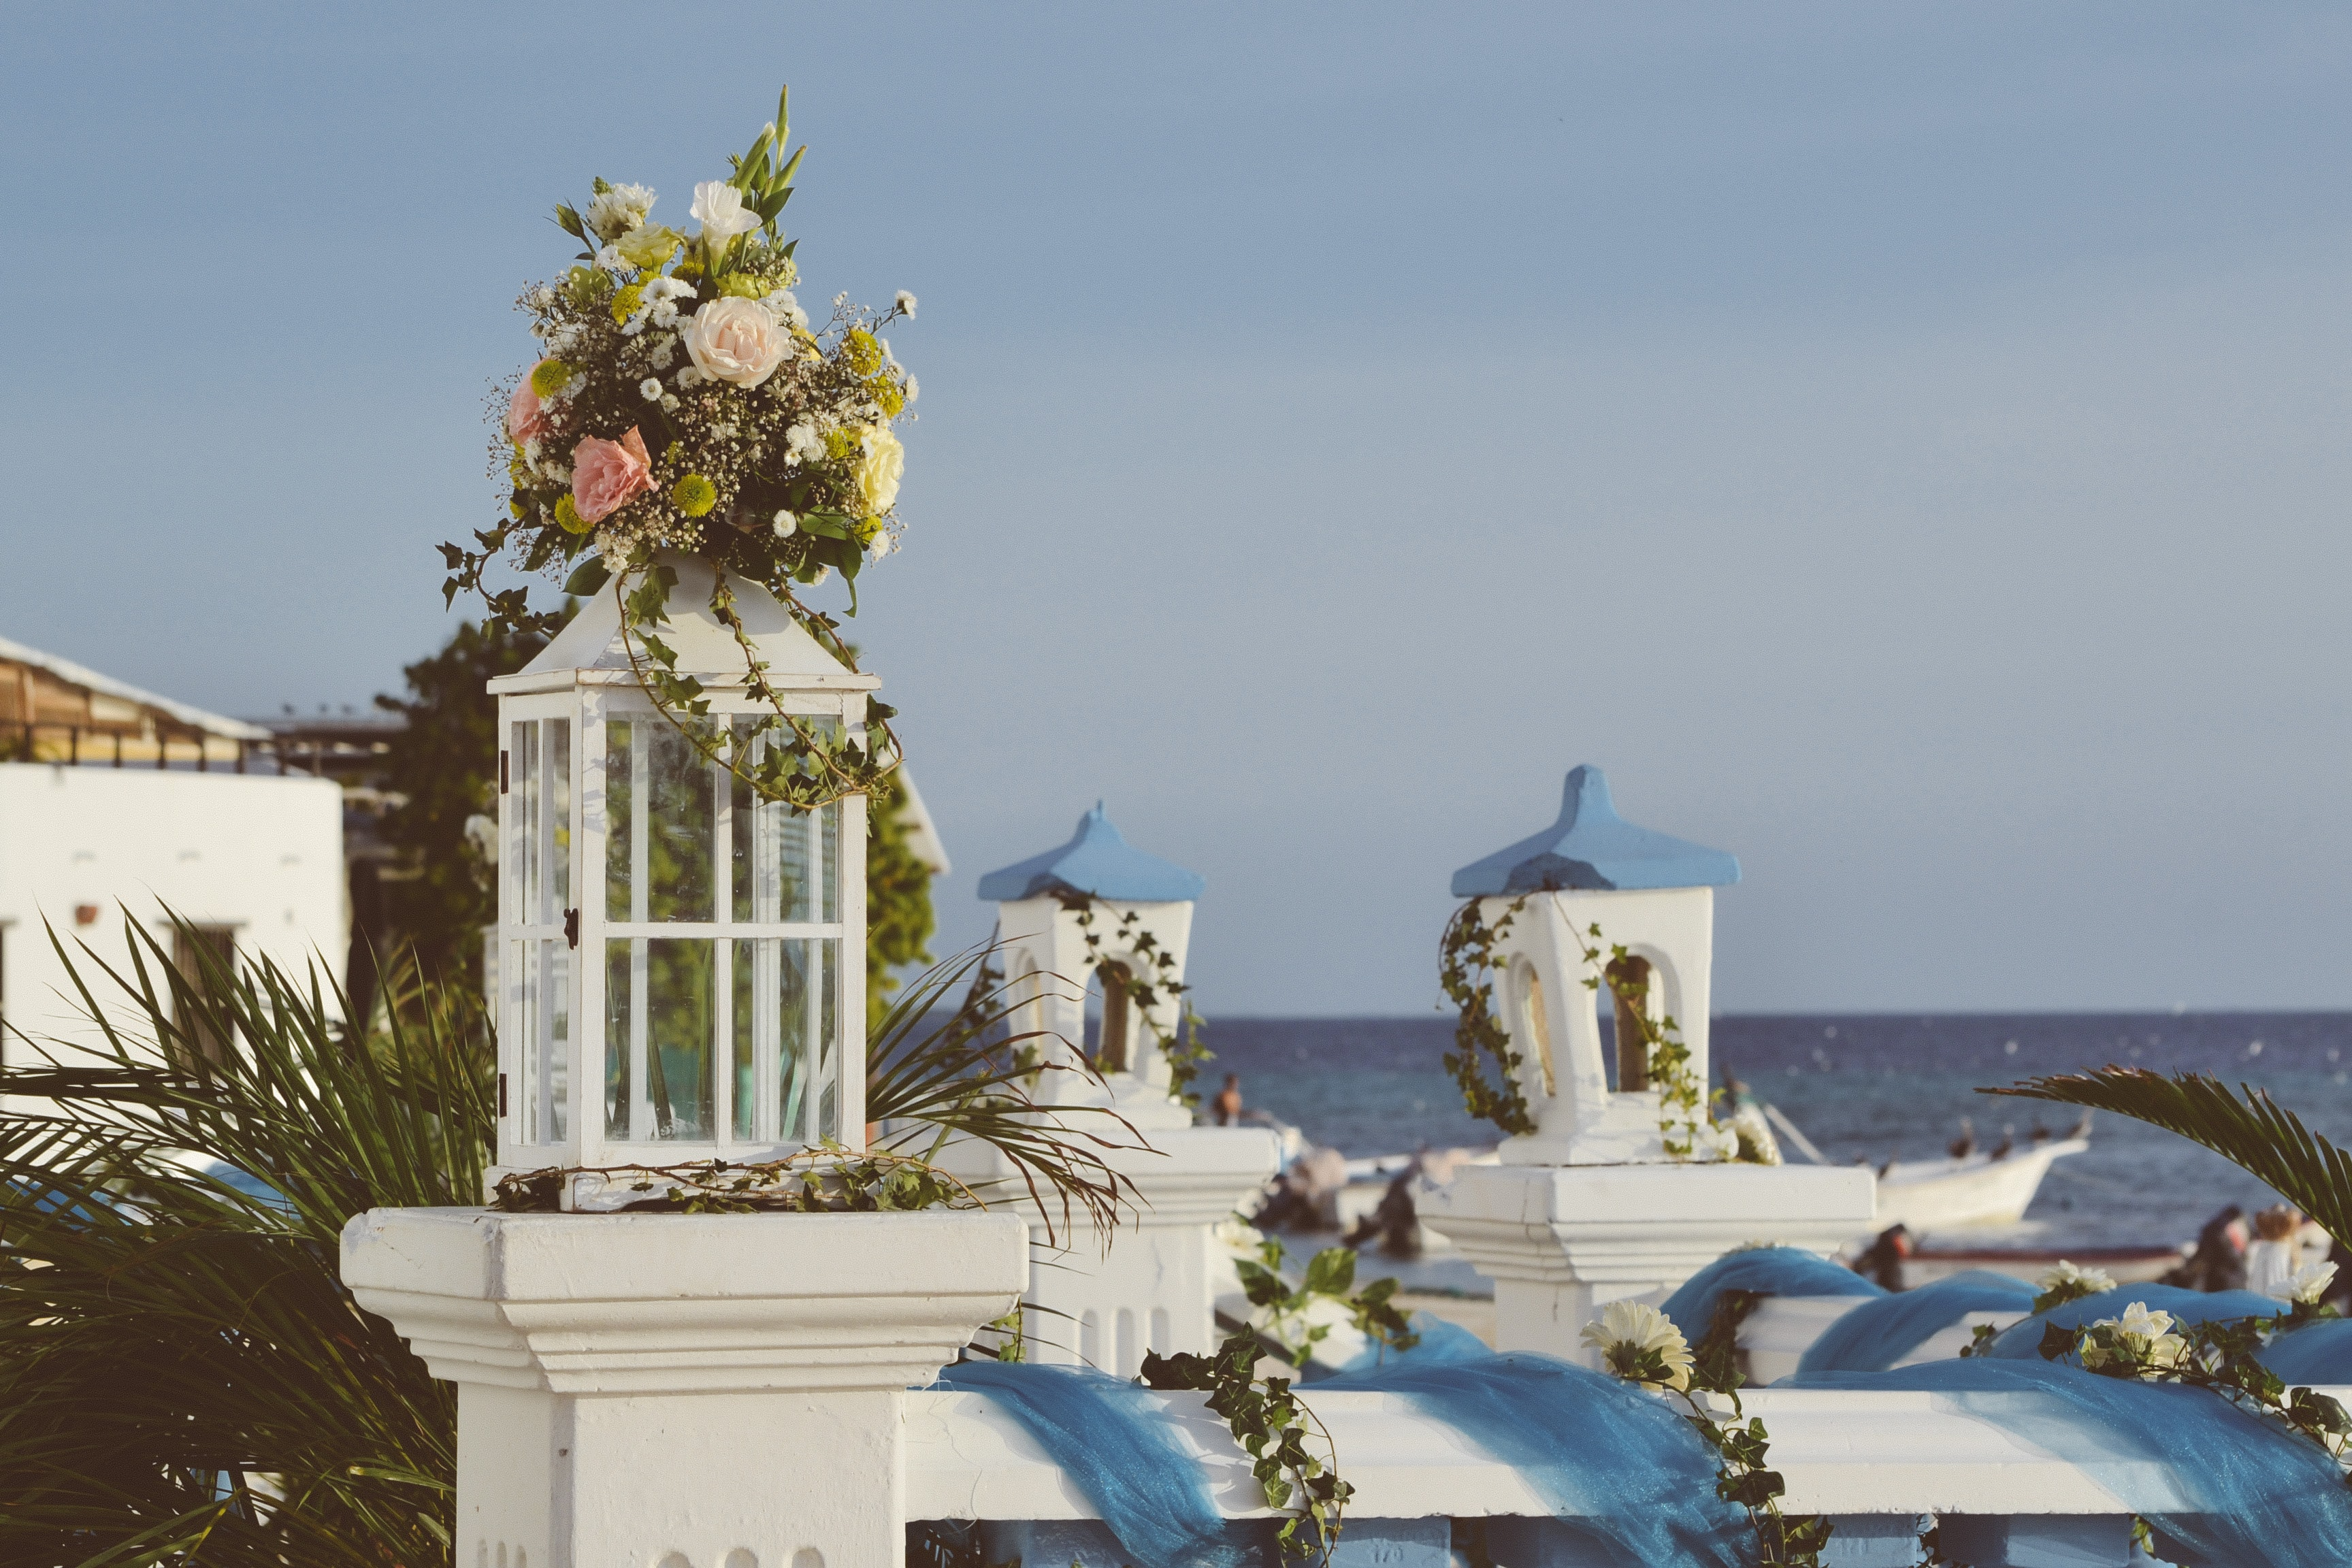 A bunch of flowers on top of a balustrade in a Mediterranean setting with the sea in the background